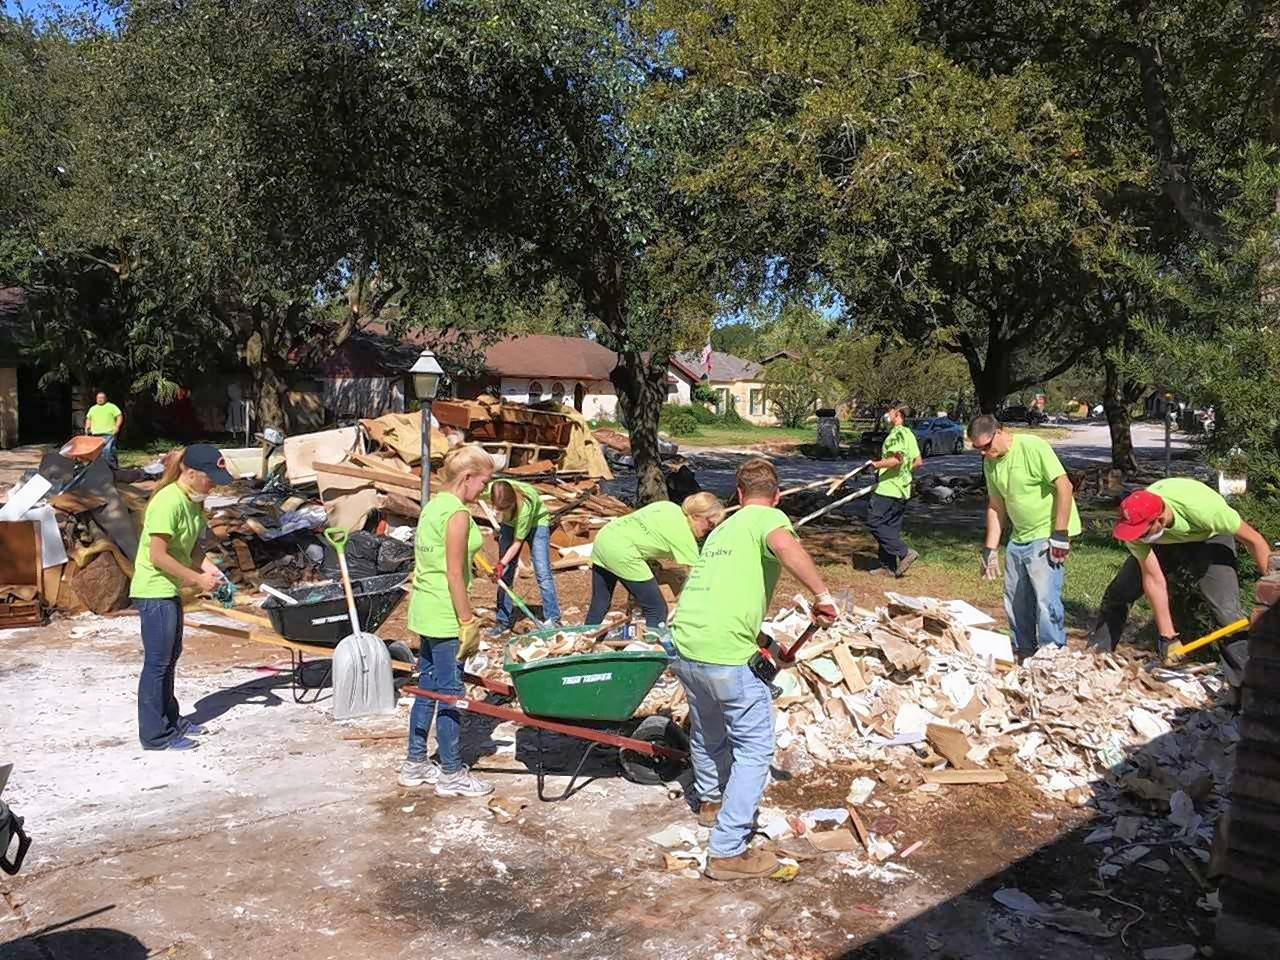 The Orchard volunteer team in action in Houston, Texas.